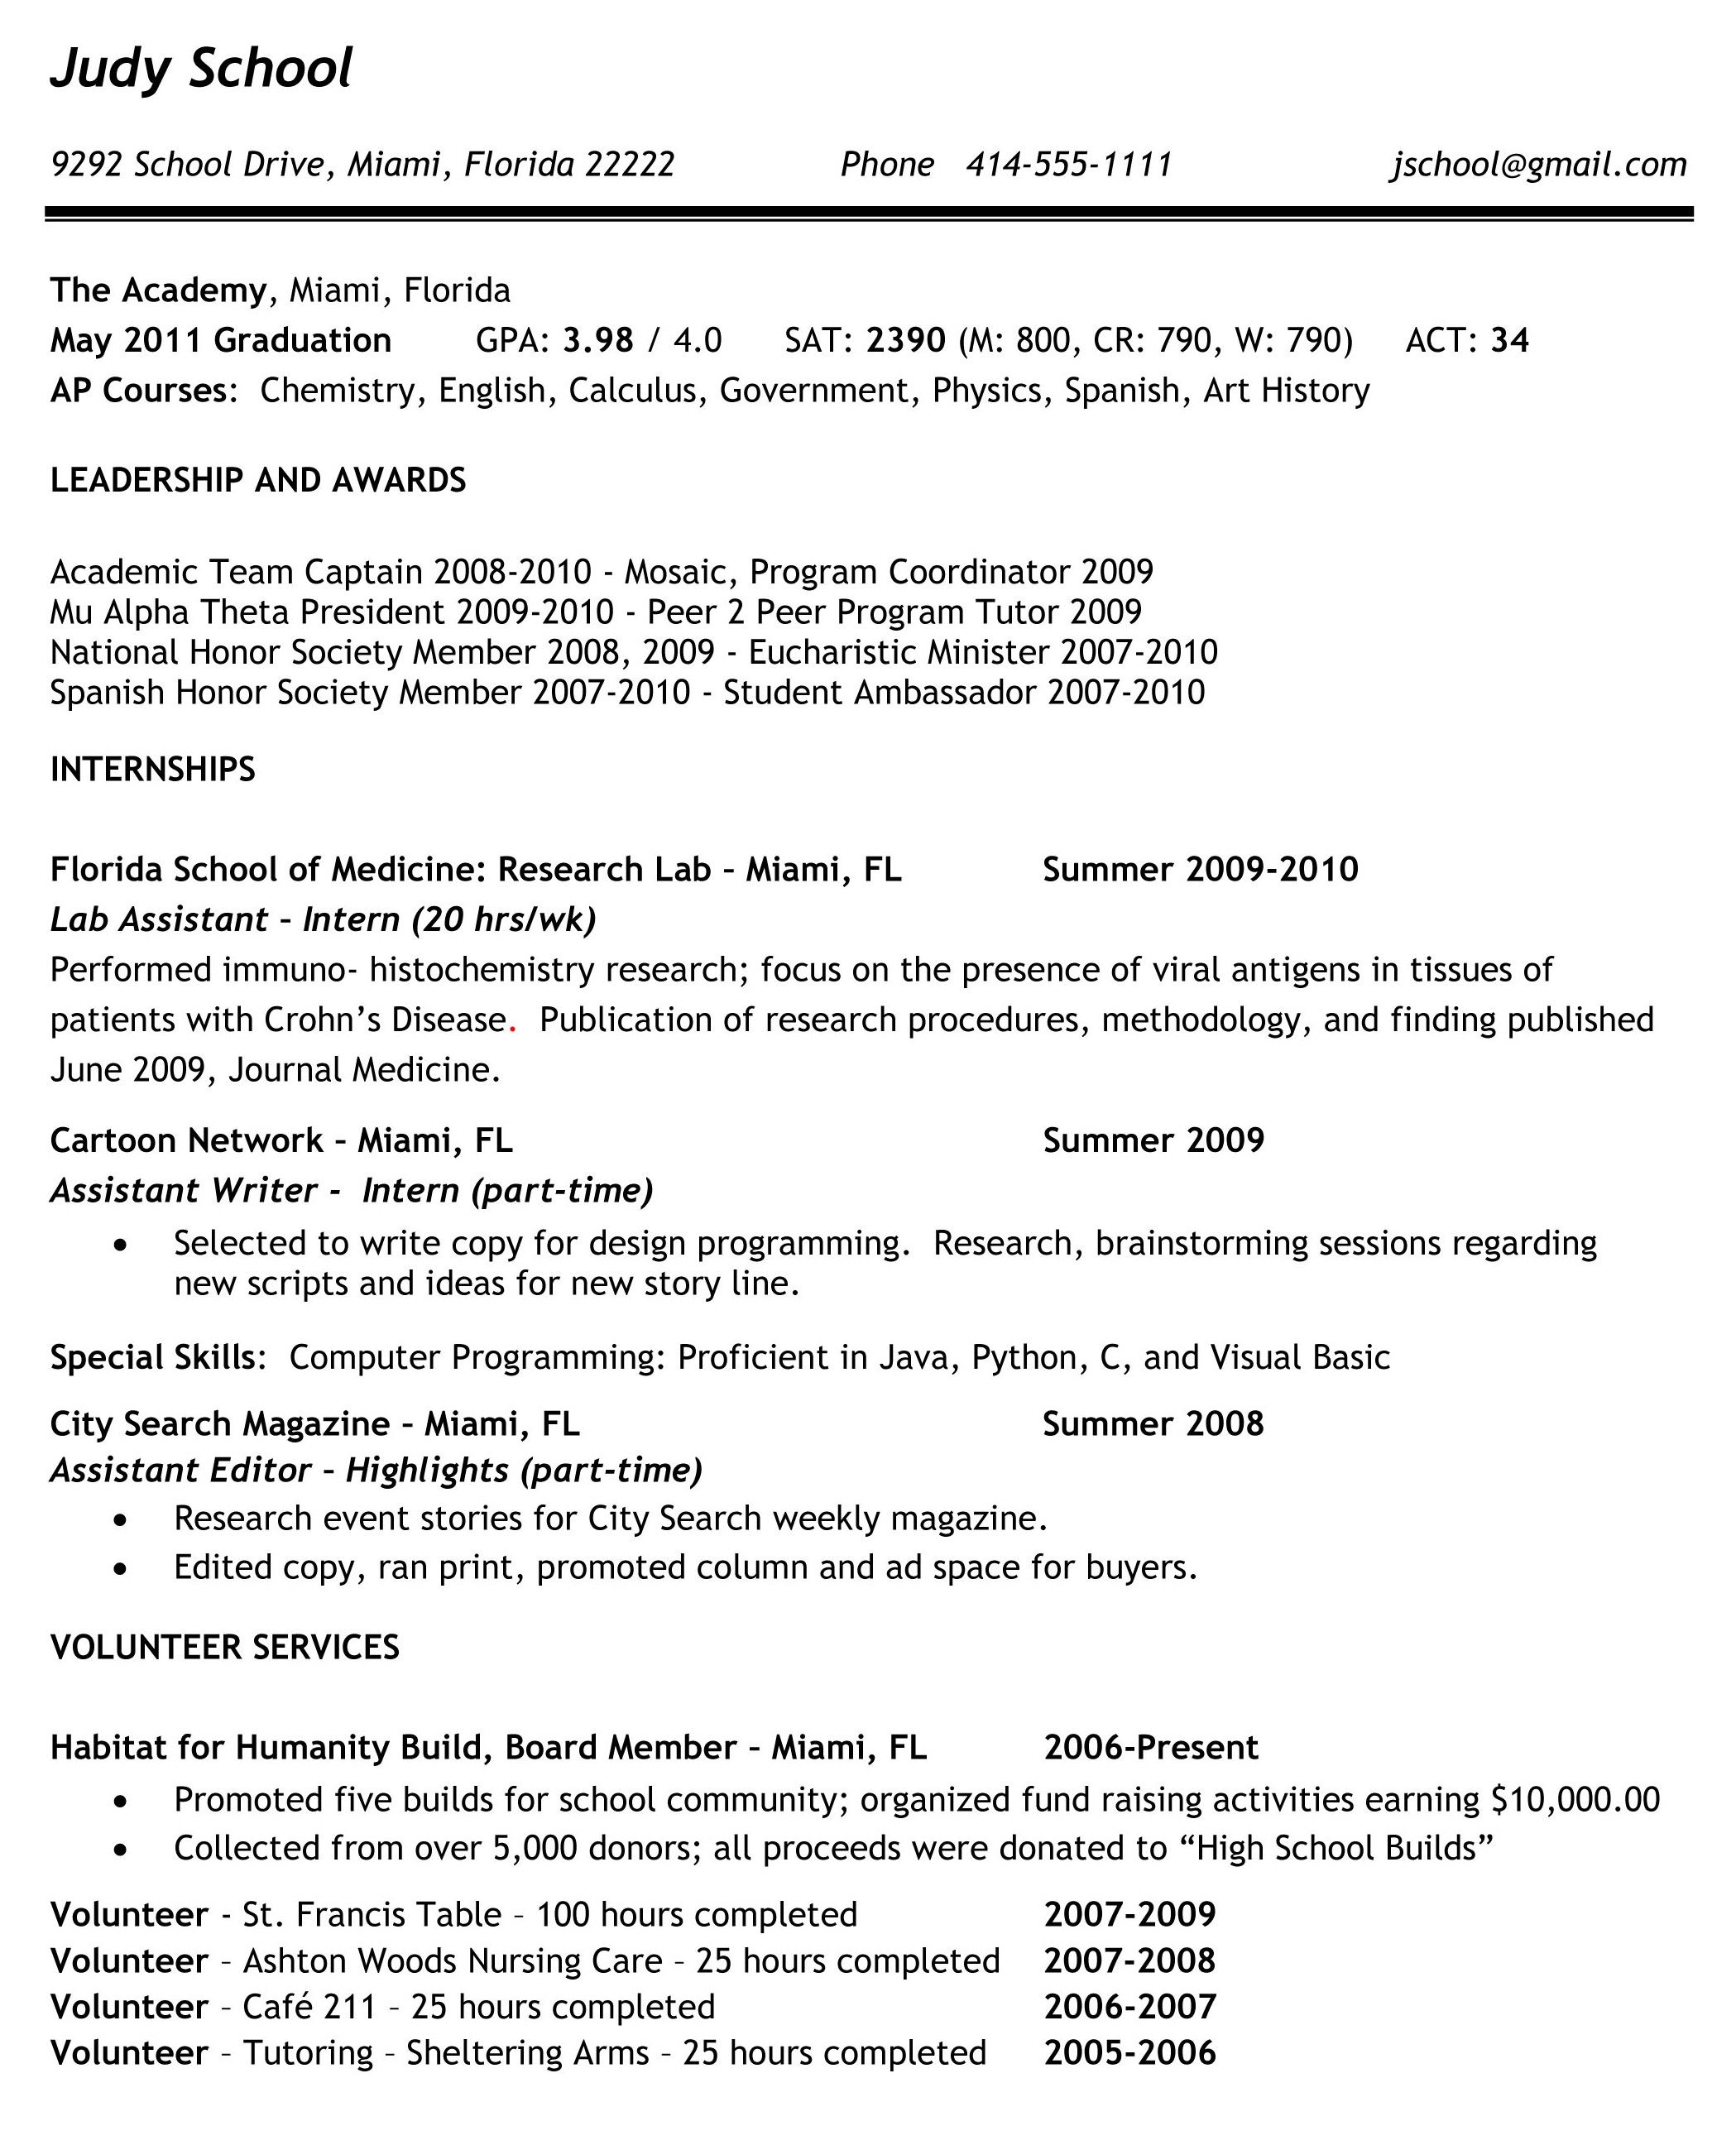 College Resume Stunning High School Resume Examples For College Admission Sample Resumes Inspiration Design